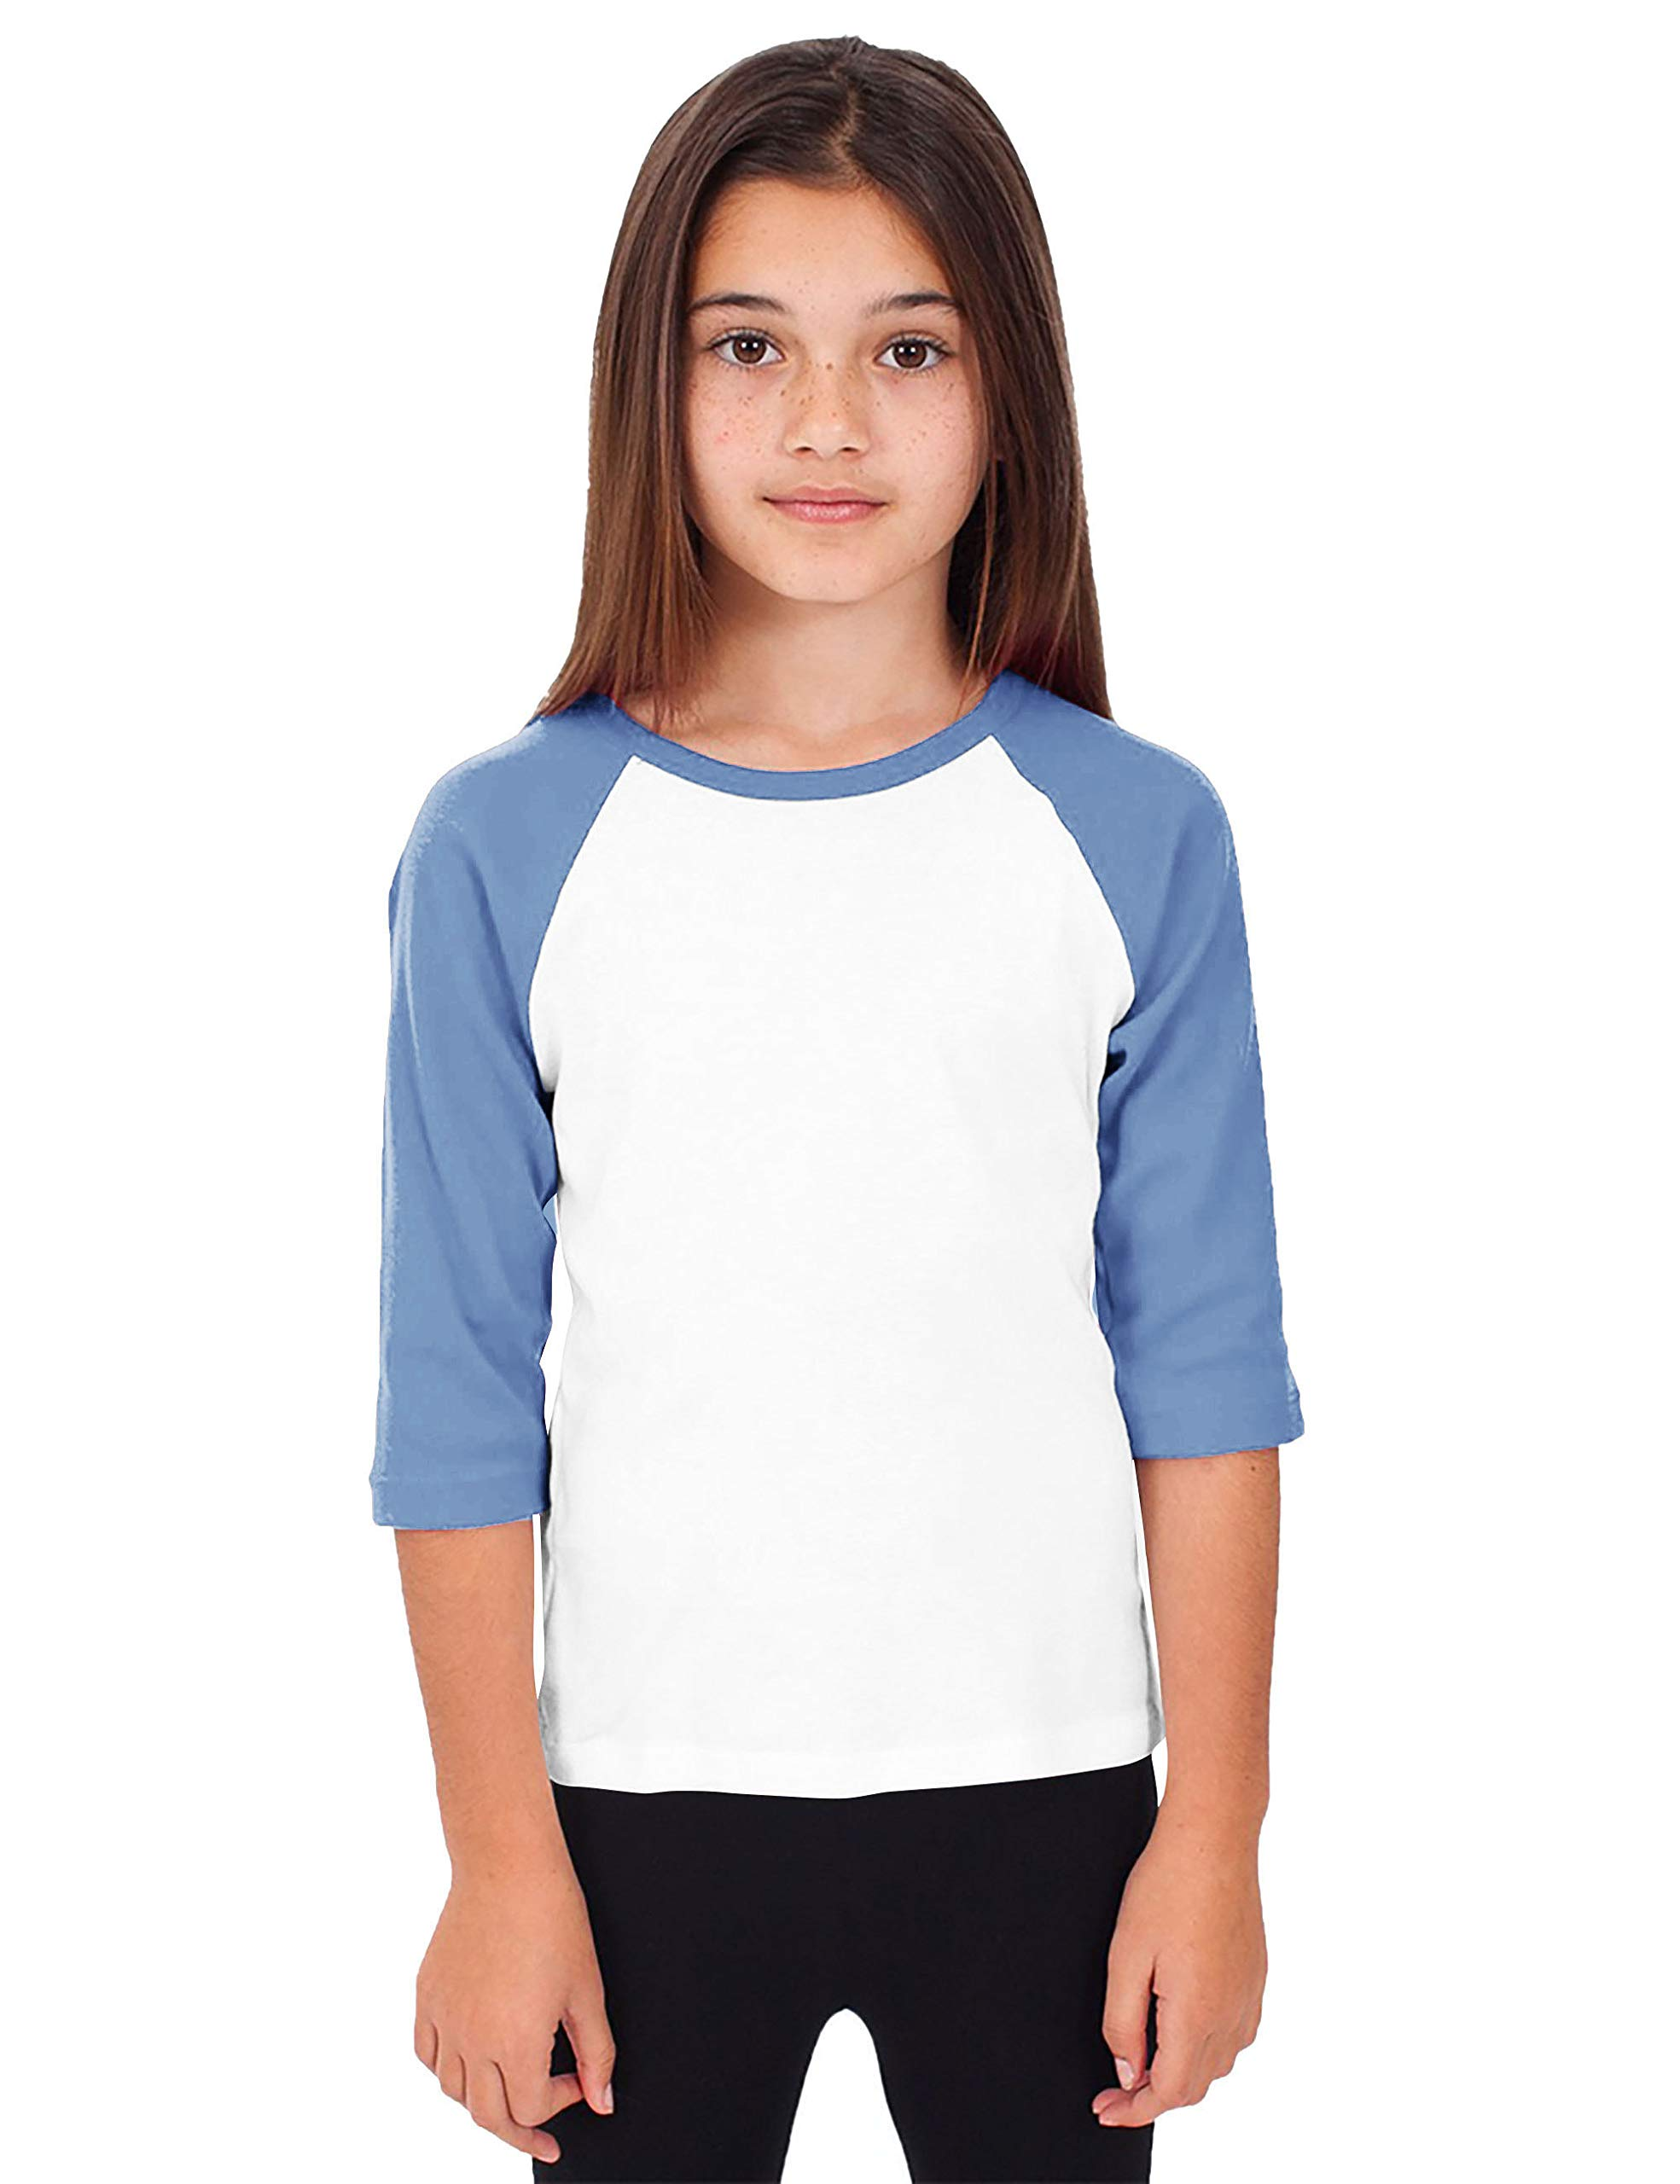 Hat and Beyond Kids Raglan Jersey Child Toddler Youth Uniforms 3/4 Sleeves T Shirts (Small (4-5 Year) (Baby) 5bh03_White/Carolina Blue) by Hat and Beyond